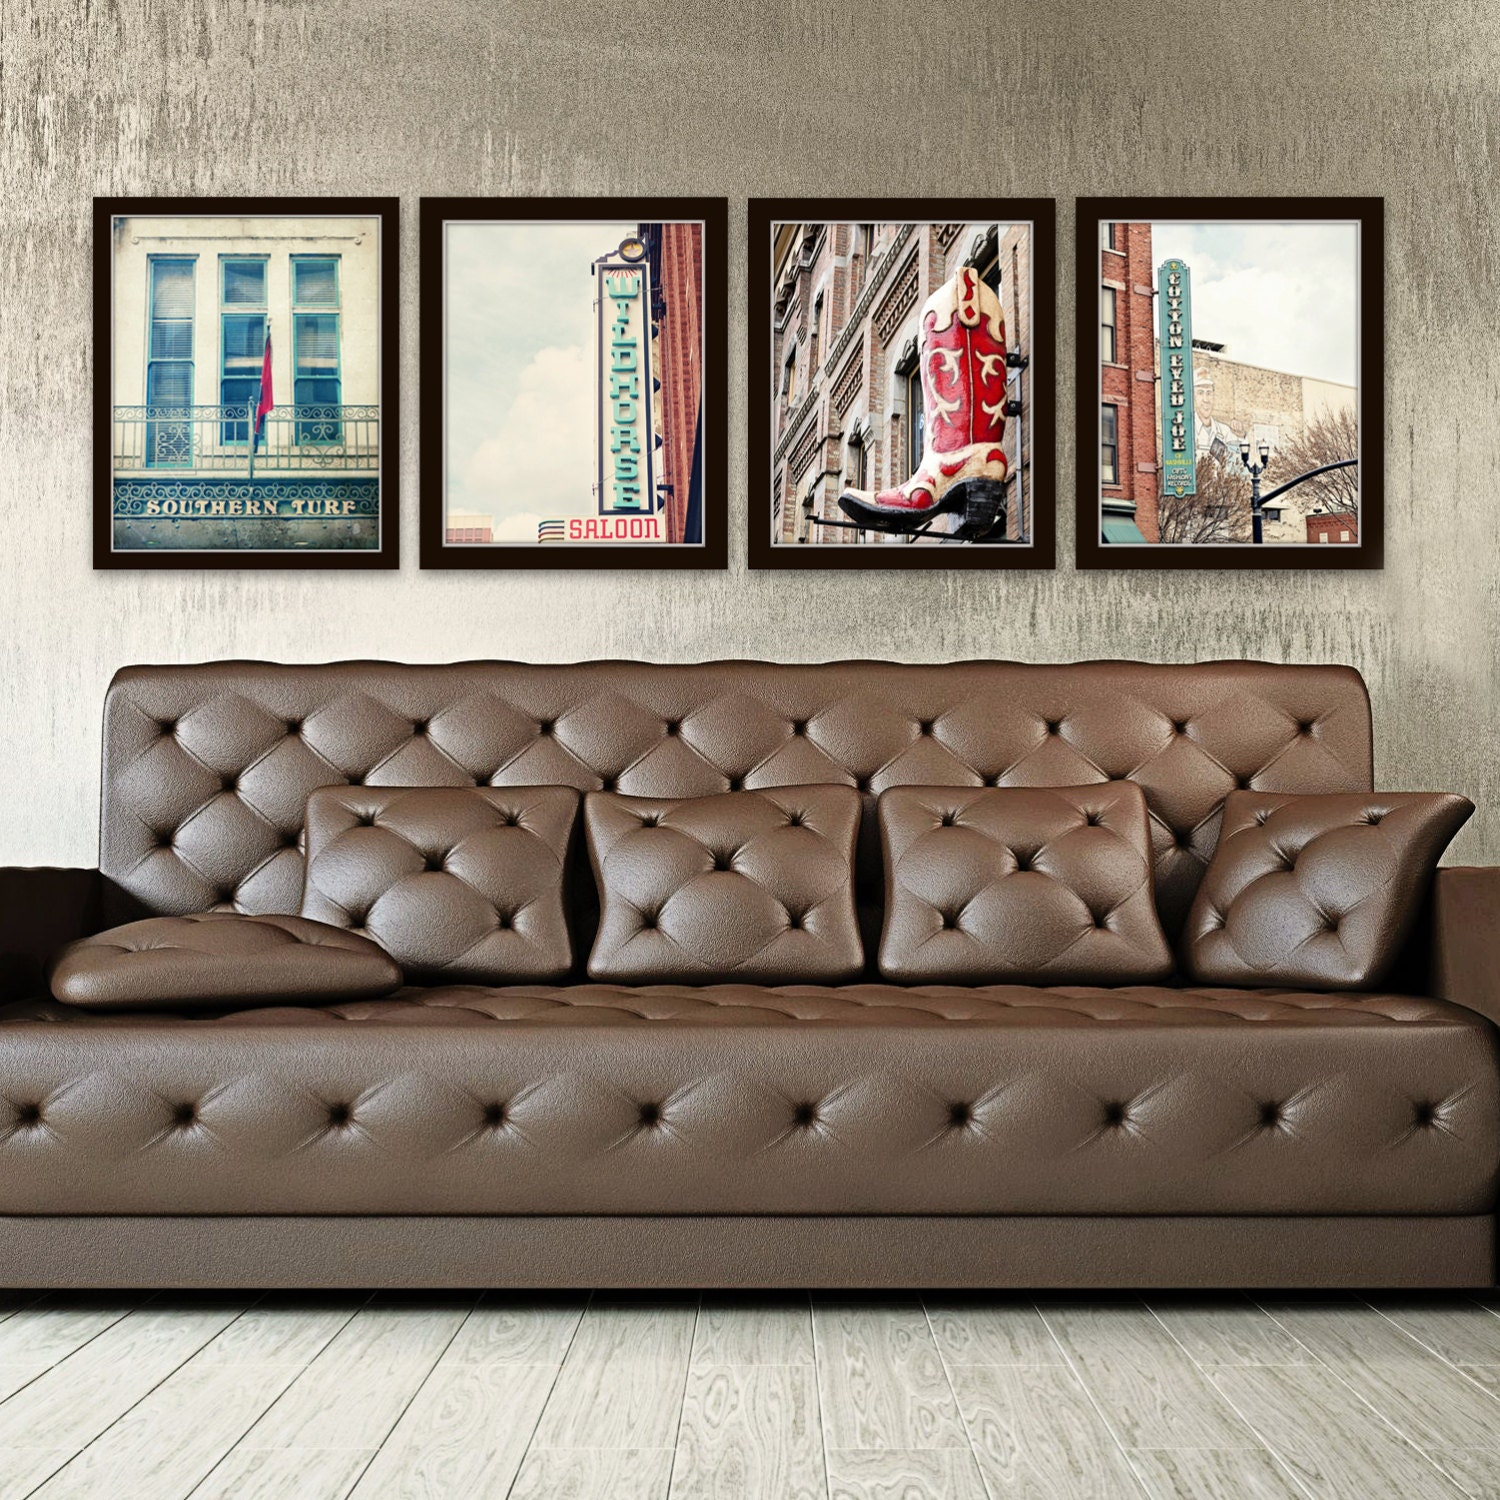 nashville wall art industrial decor city photography set of 4